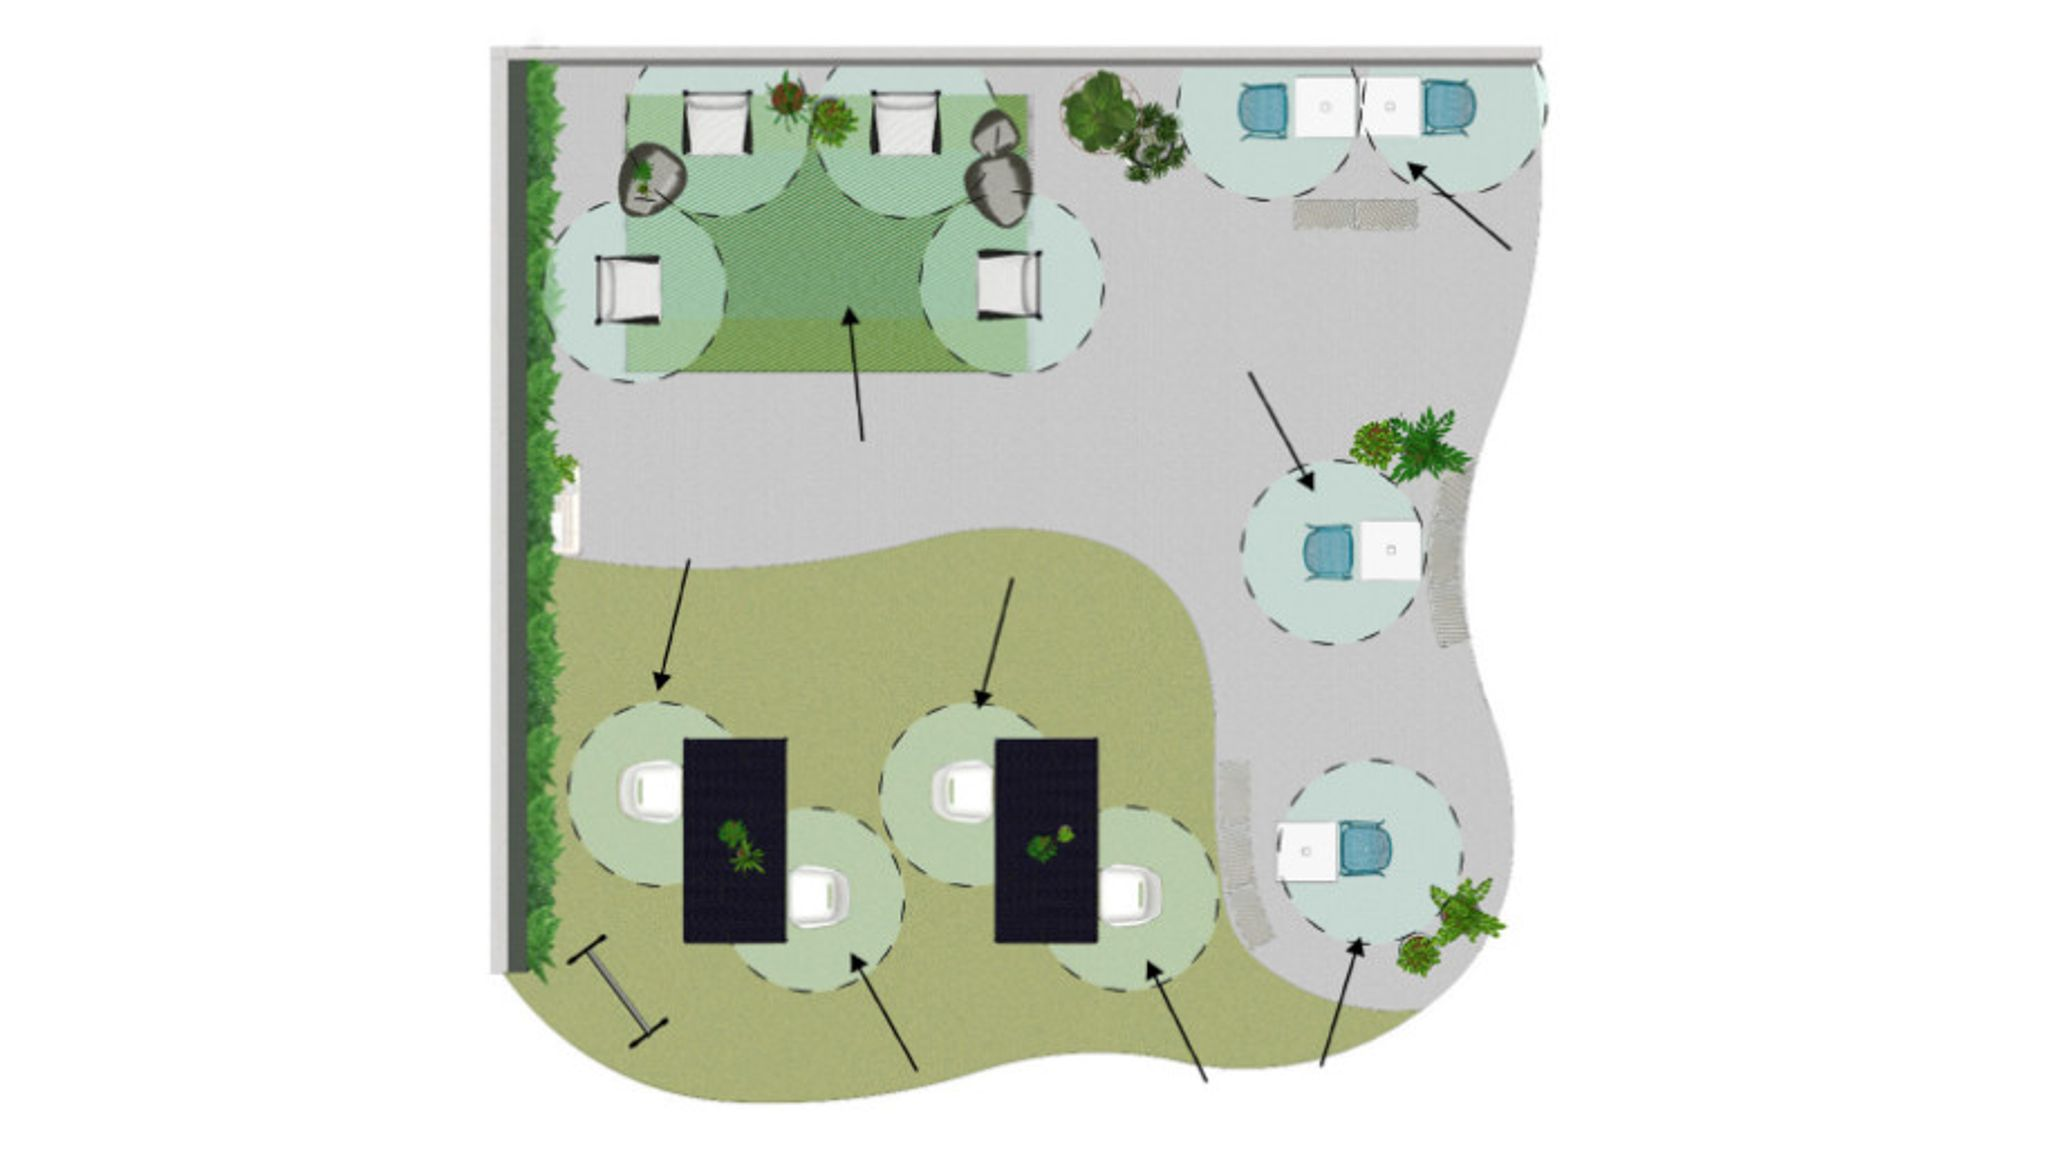 floorplan overhead view